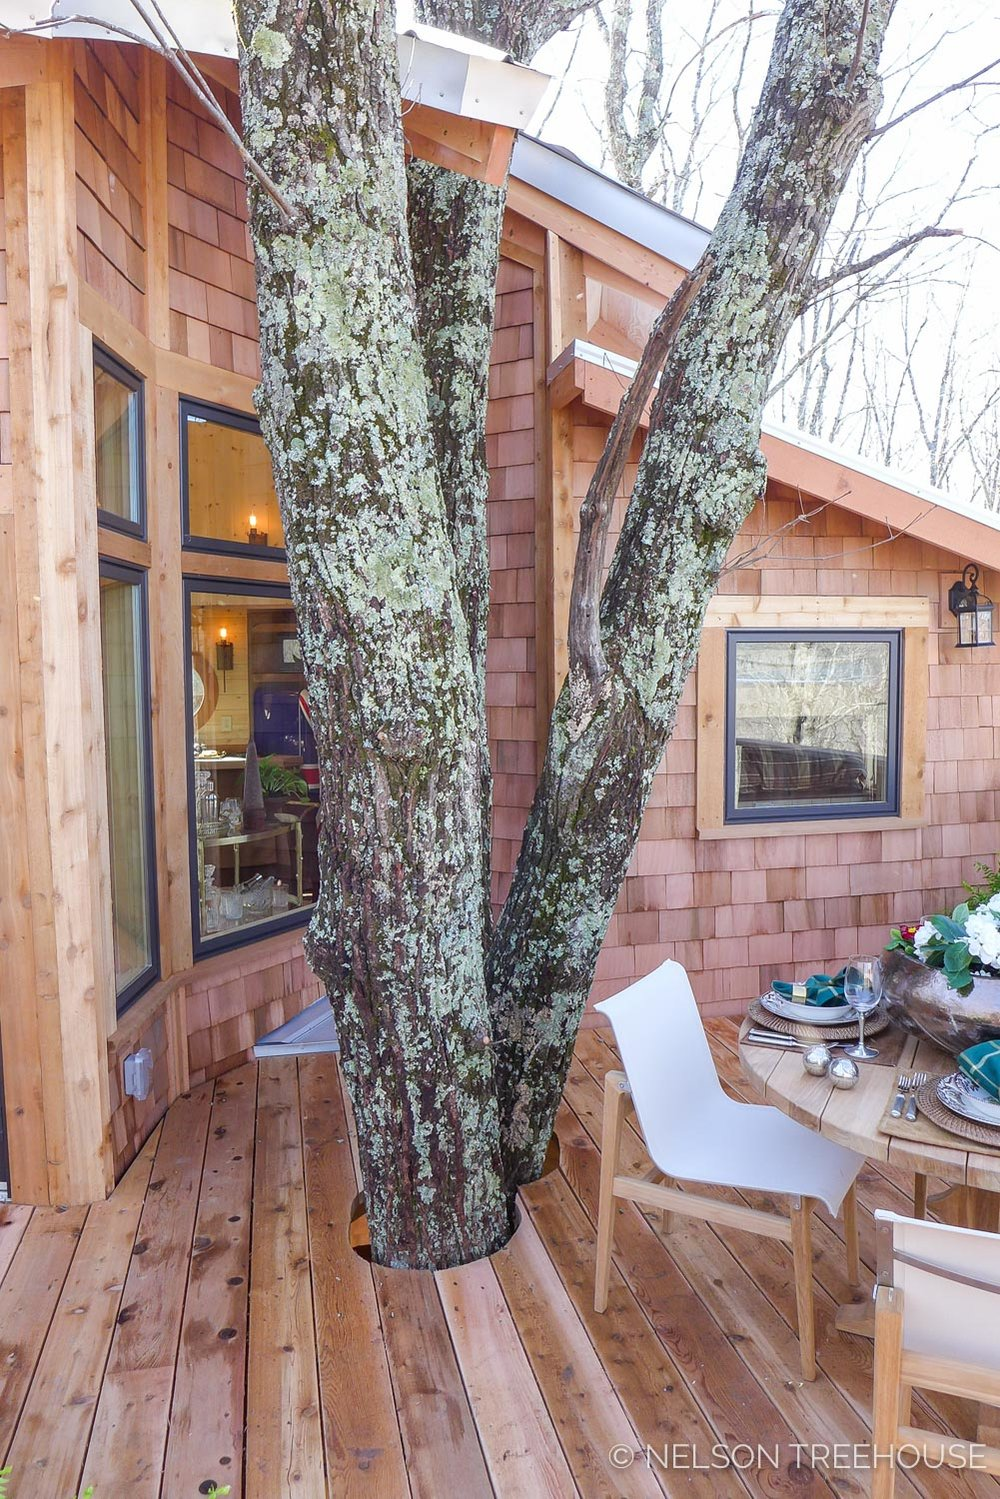 Super Spy Treehouse - Nelson Treehouse 2018 - Trees through deck